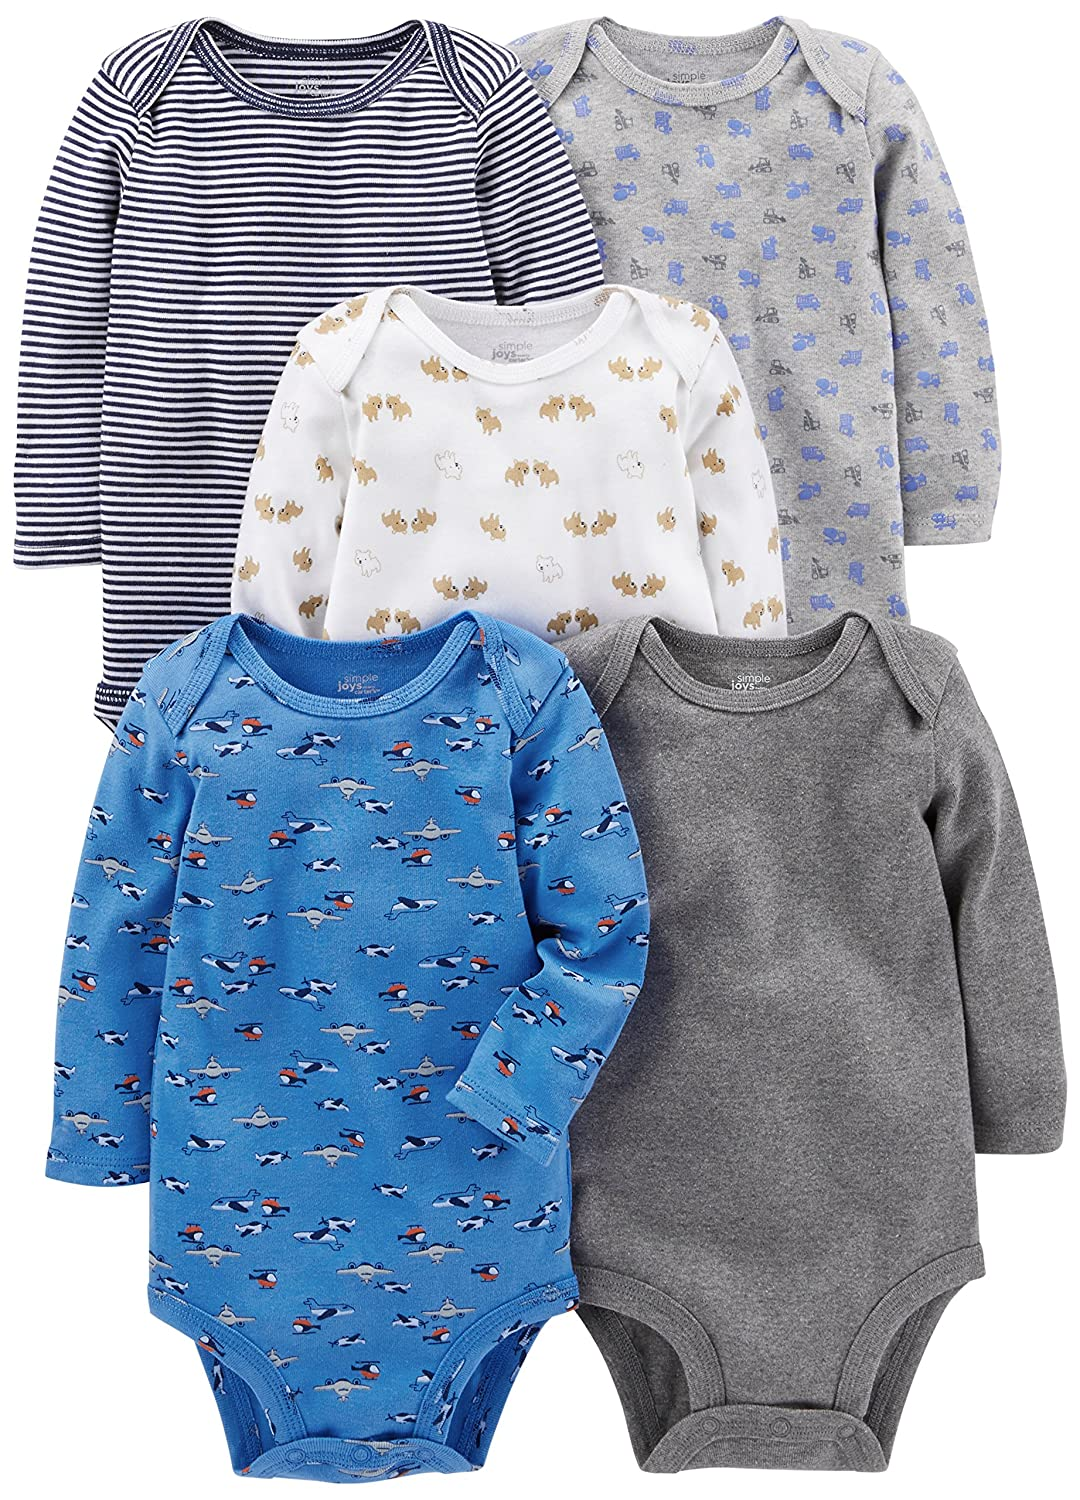 Amazon.com  Simple Joys by Carter s Baby Boys  5-Pack Long-Sleeve Bodysuit   Clothing 5115f07db